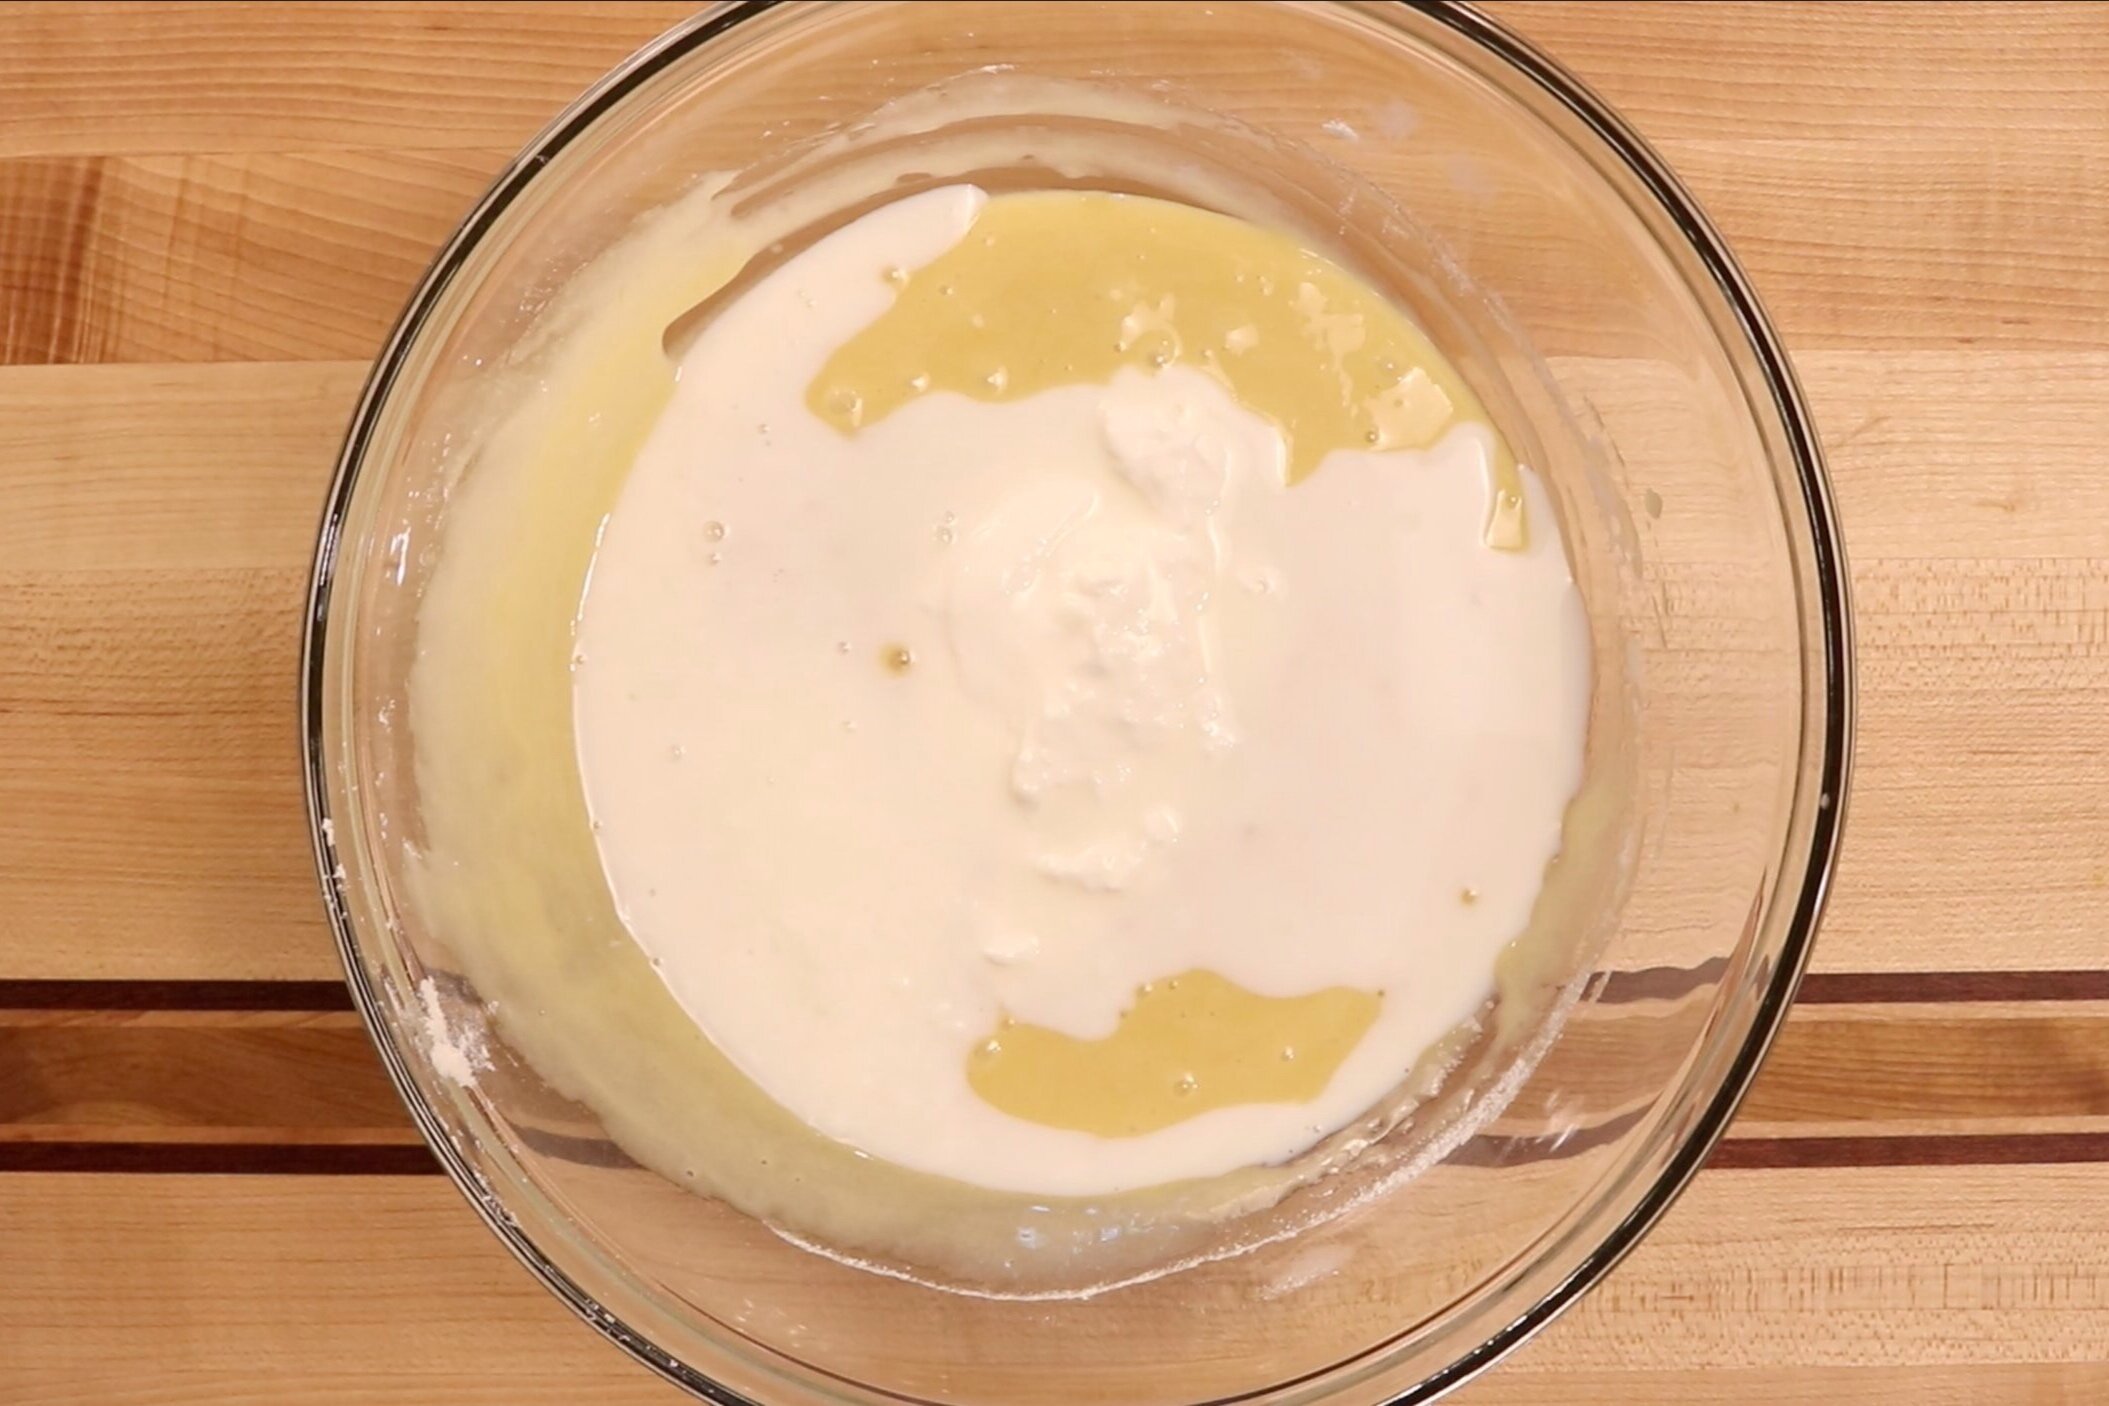 8. Stir in the sour cream and buttermilk. Mix until combined. -